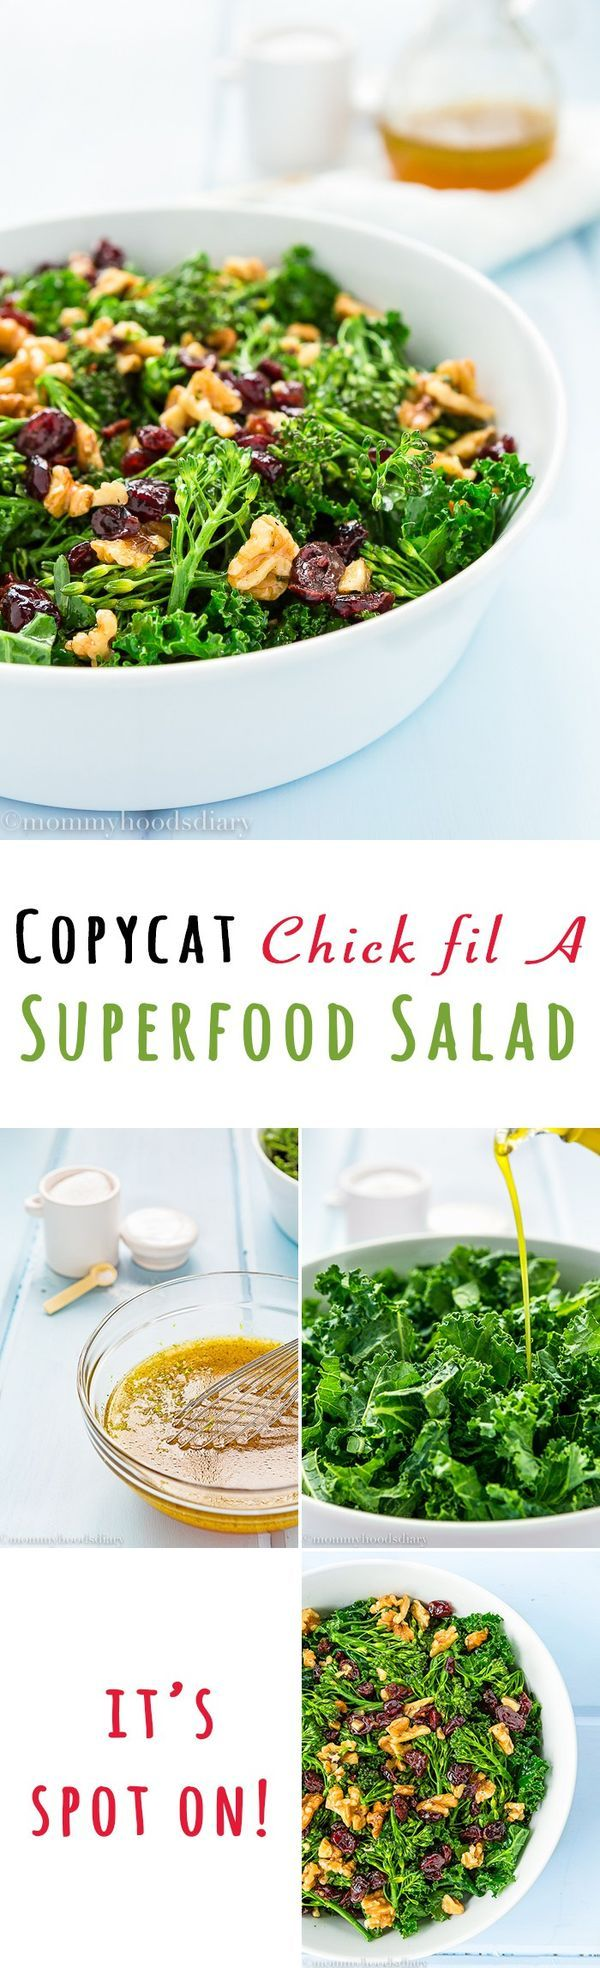 You'll love how easily you can make this Copycat Chick oil A Superfood Salad recipe at home! Only a few ingredients, a couple of minutes and you can have a huge bowl all to yourself.